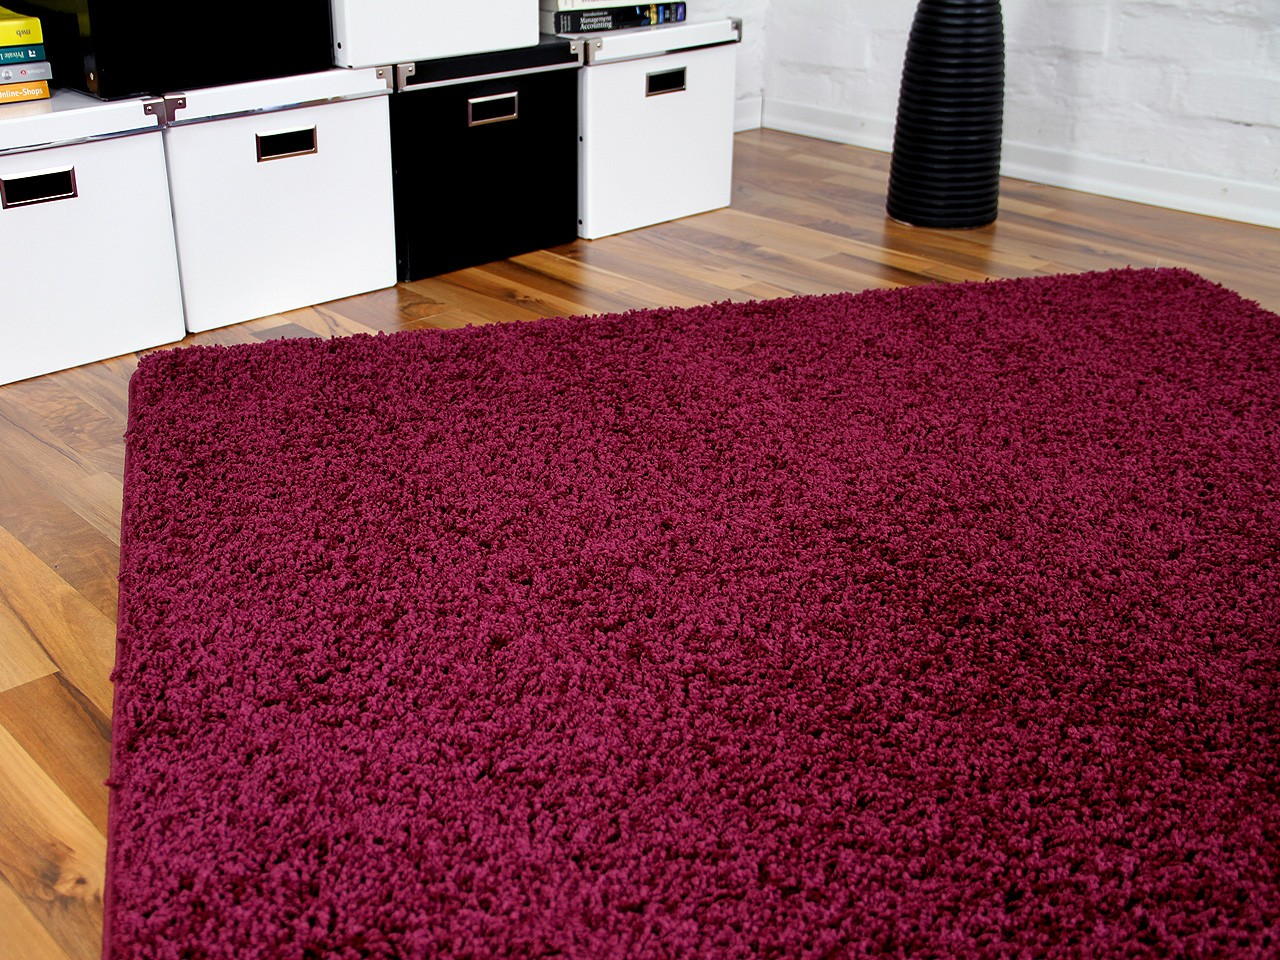 teppich hochflor shaggy premio burgund in 24 gr en ebay. Black Bedroom Furniture Sets. Home Design Ideas